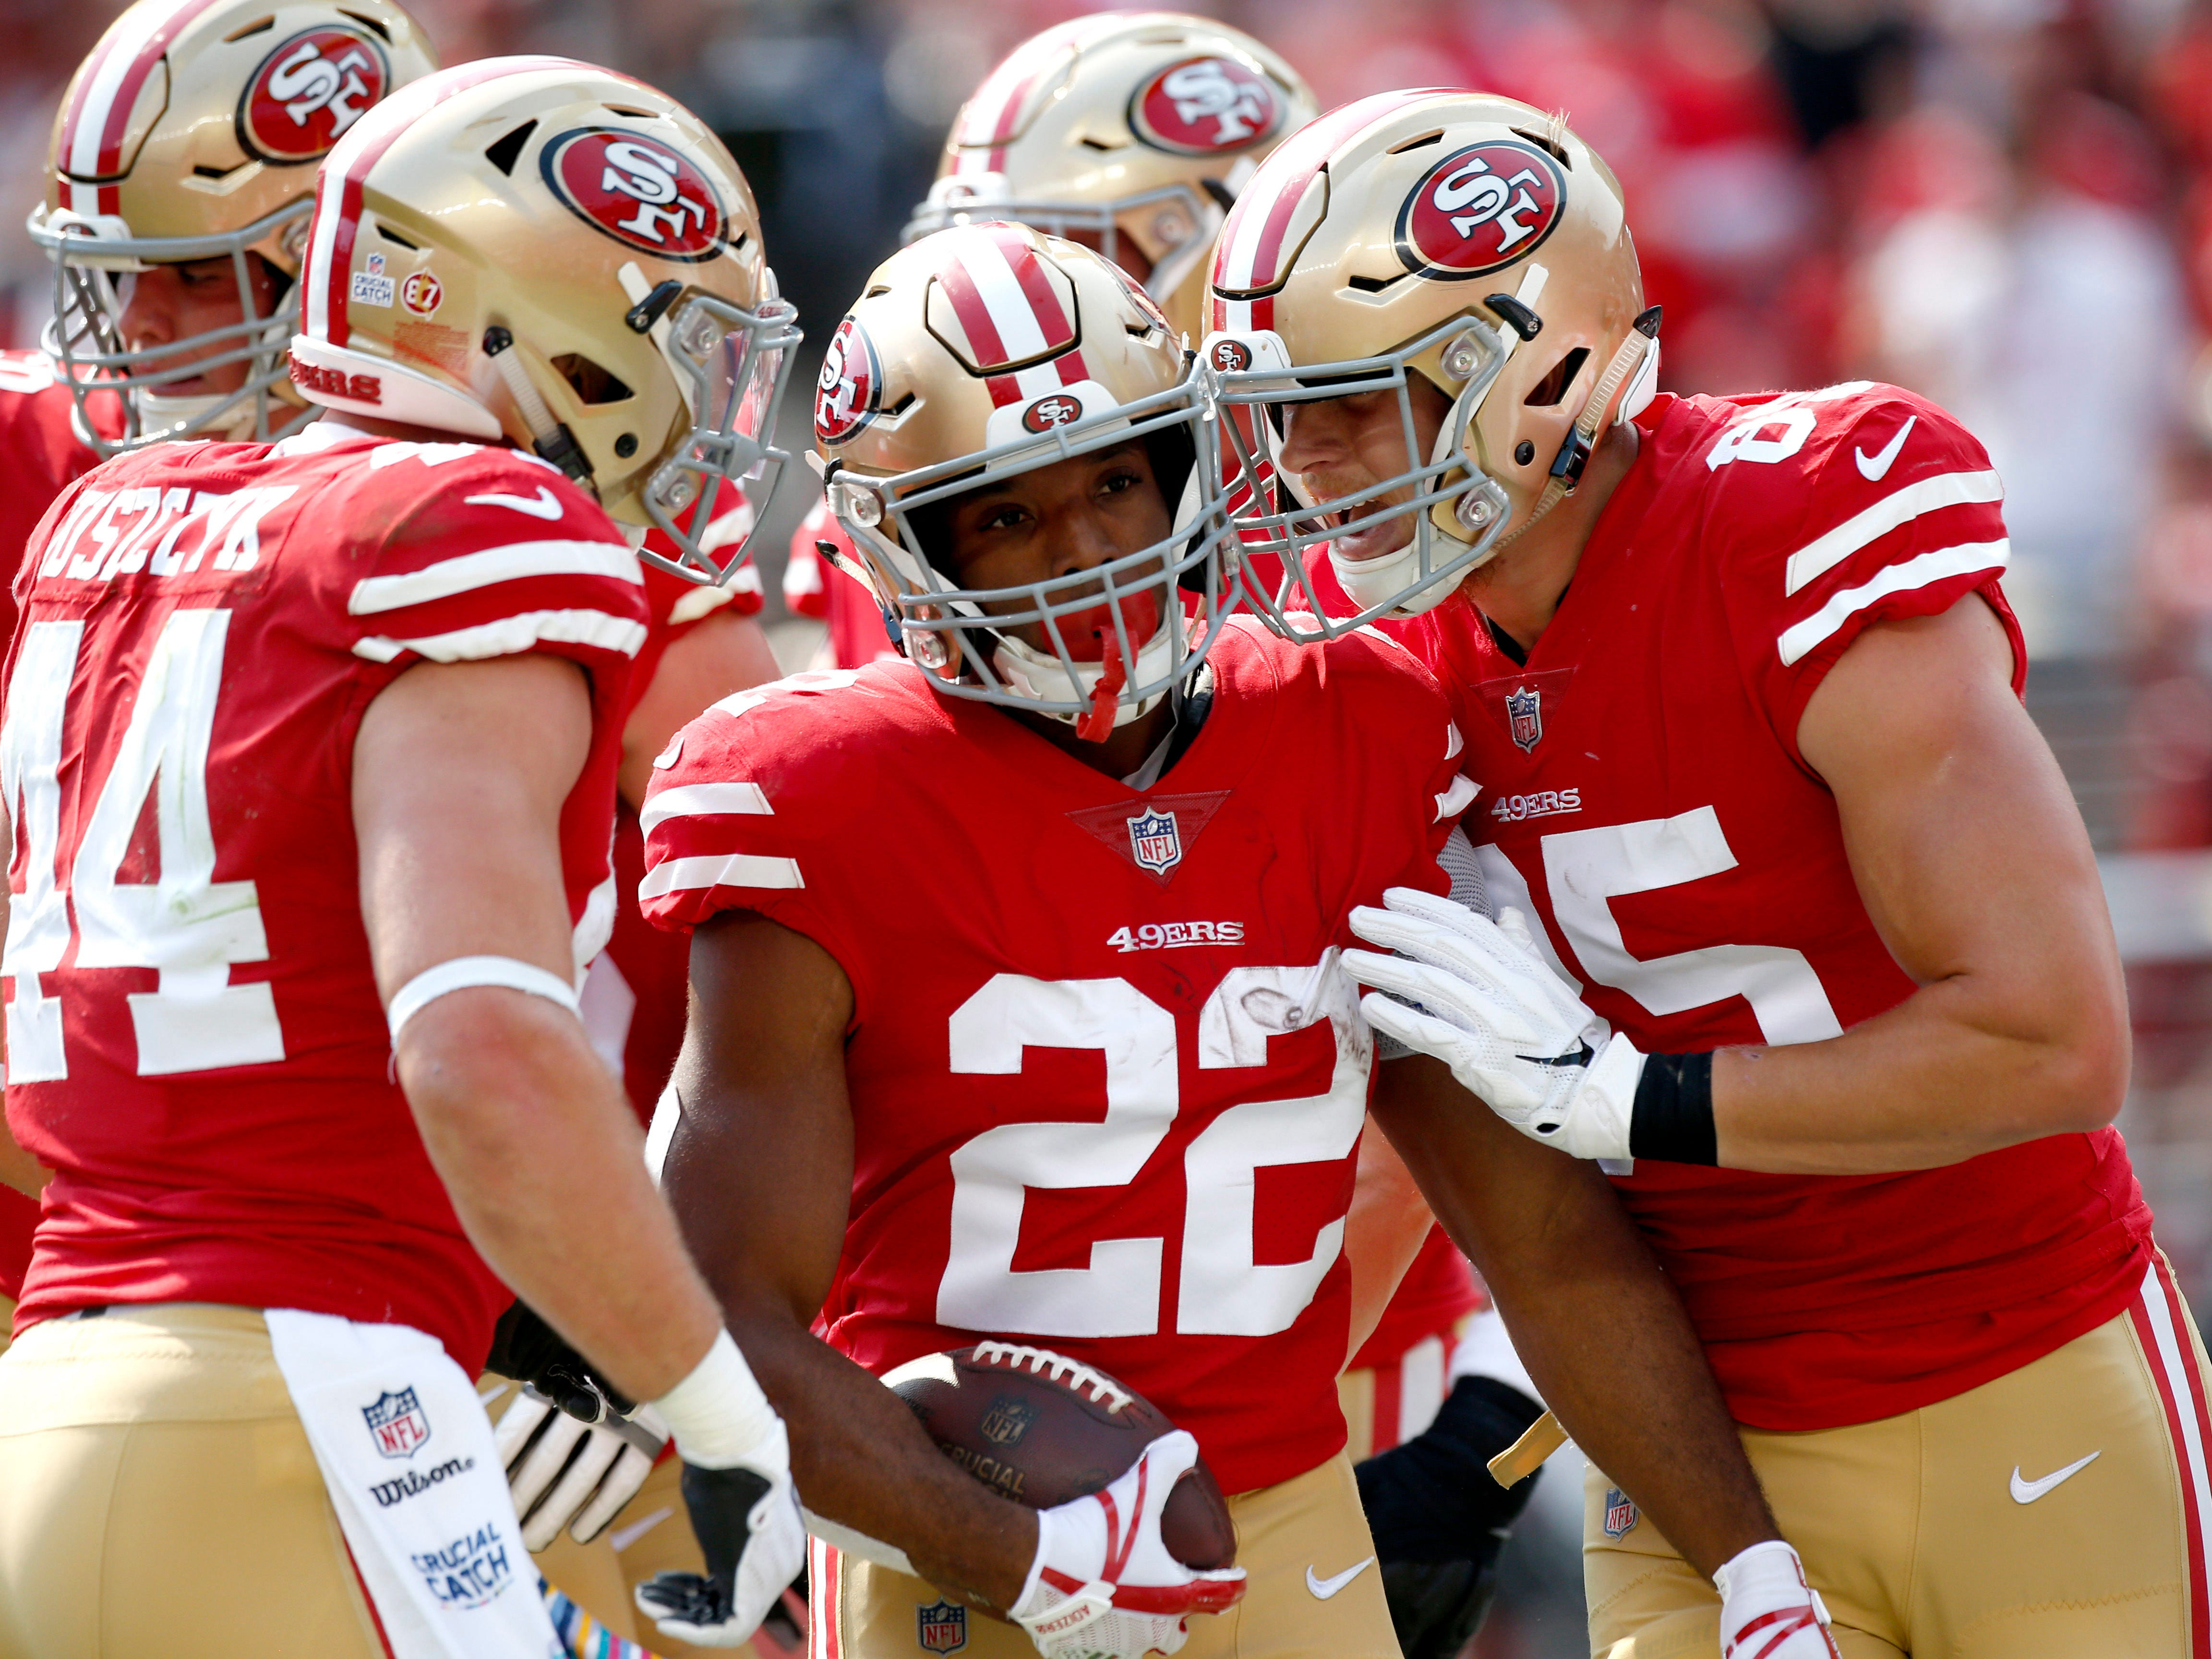 Oct 7, 2018; Santa Clara, CA, USA; San Francisco 49ers running back Matt Breida (22) is congratulated by tight end George Kittle (85) after scoring a touchdown against the Arizona Cardinals in the first quarter at Levi's Stadium.